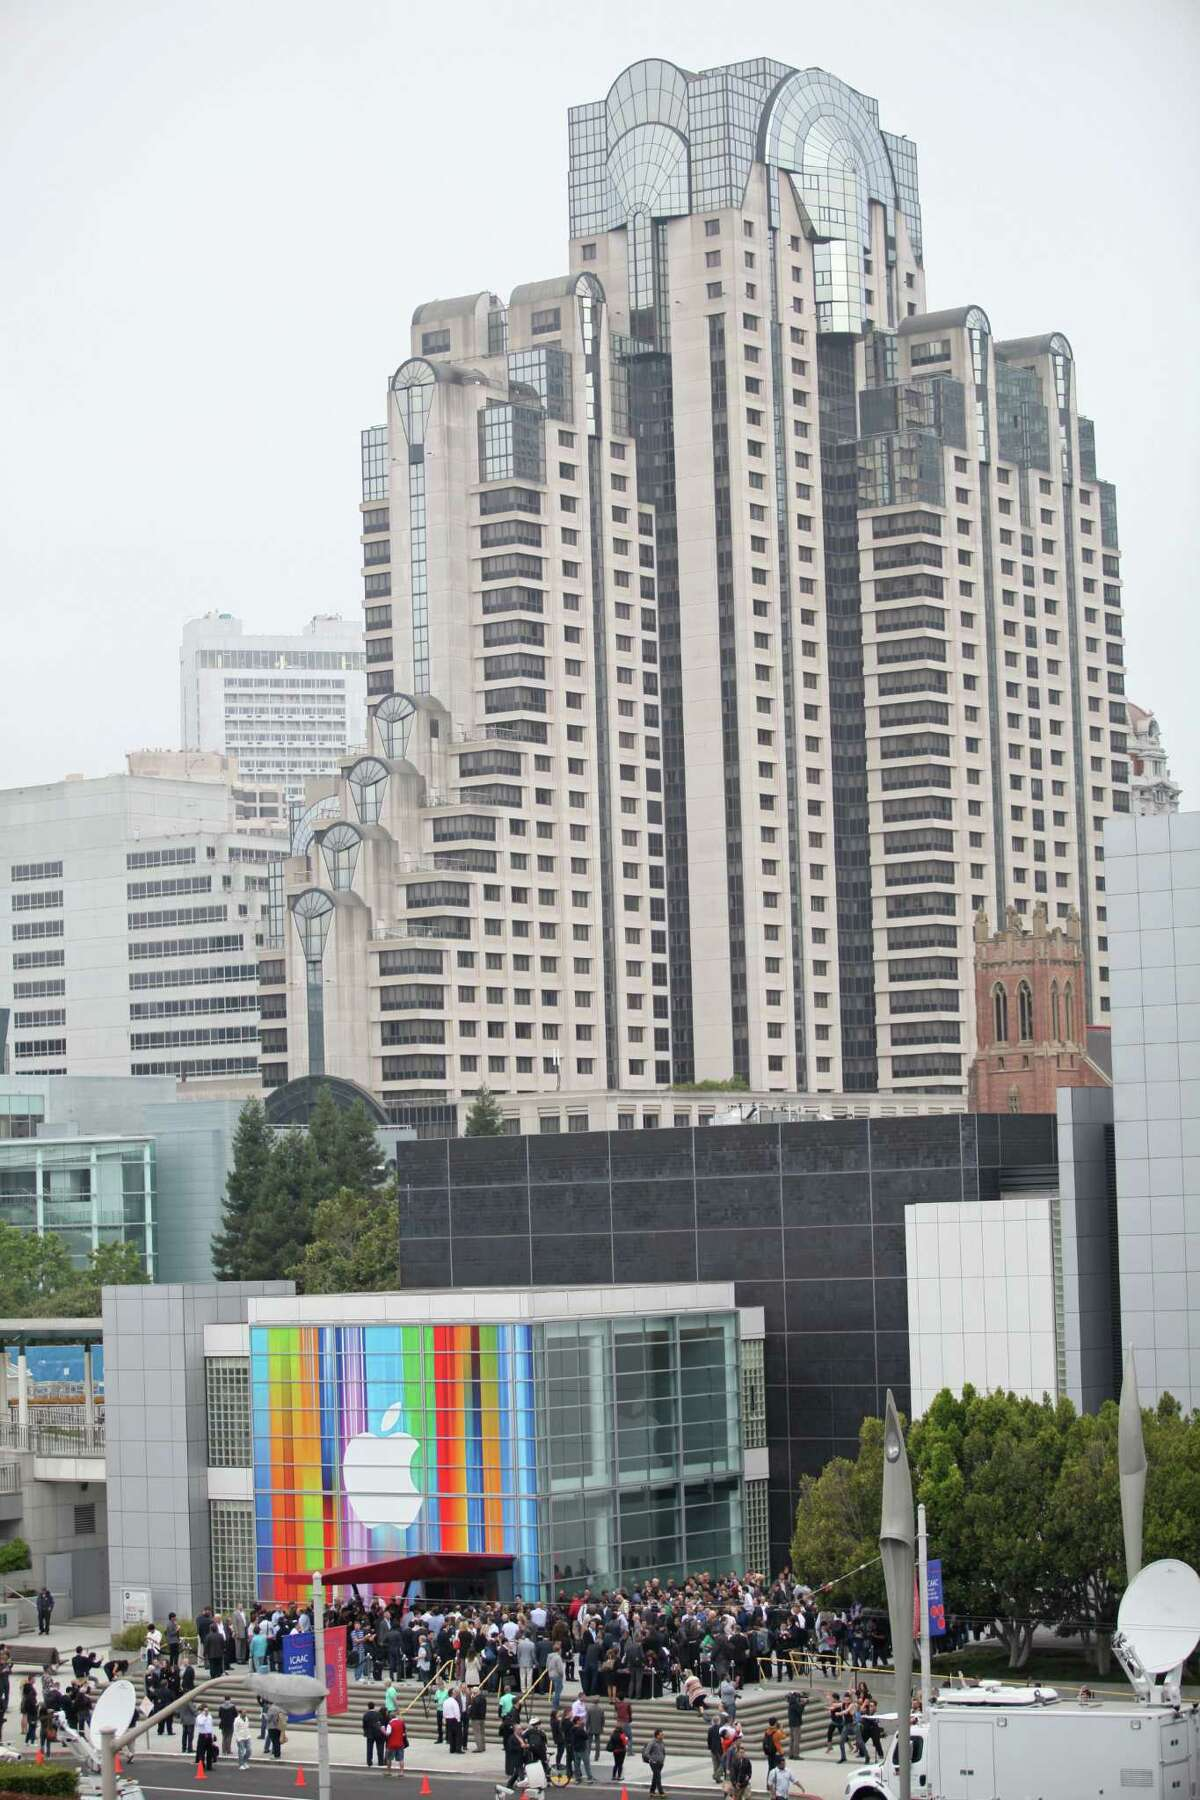 Journalists and attendees line up outside of Yerba Buena Center for the Arts in San Francisco to attend Apple's special media event to introduce the iPhone 5 on September 12, 2012 in California. AFP PHOTO/Kimihiro HoshinoKIMIHIRO HOSHINO/AFP/GettyImages